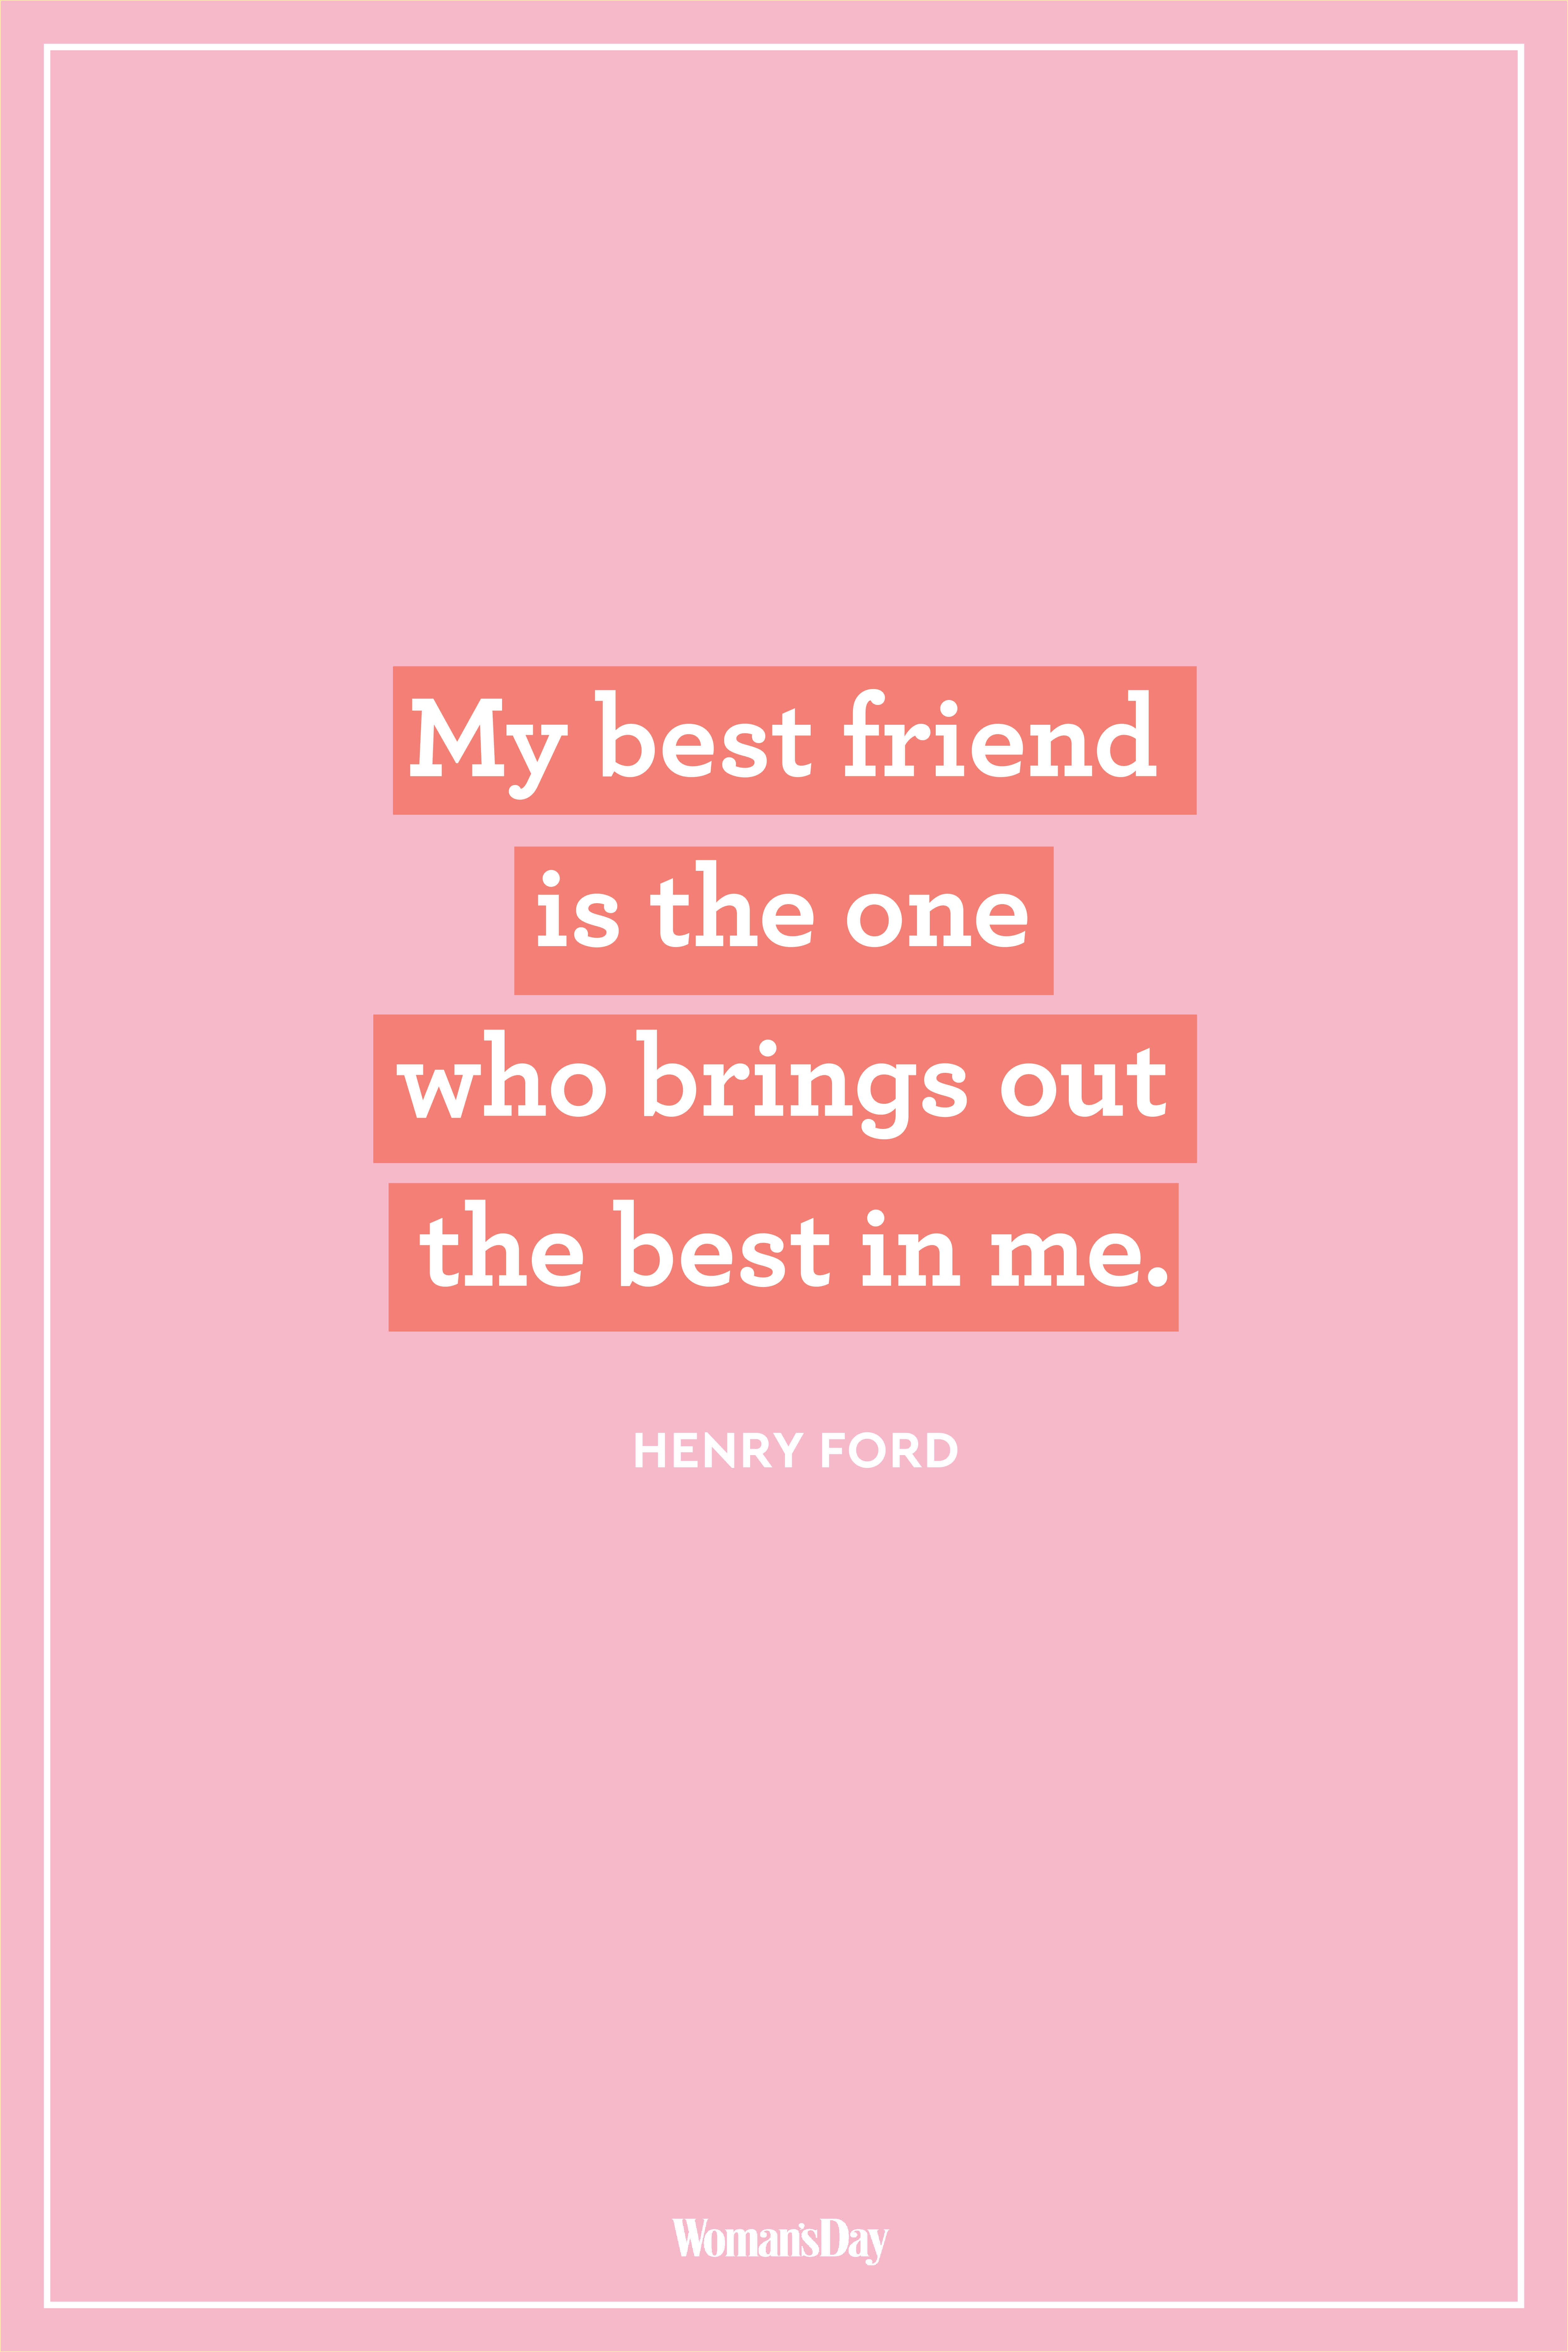 15 best friend quotes